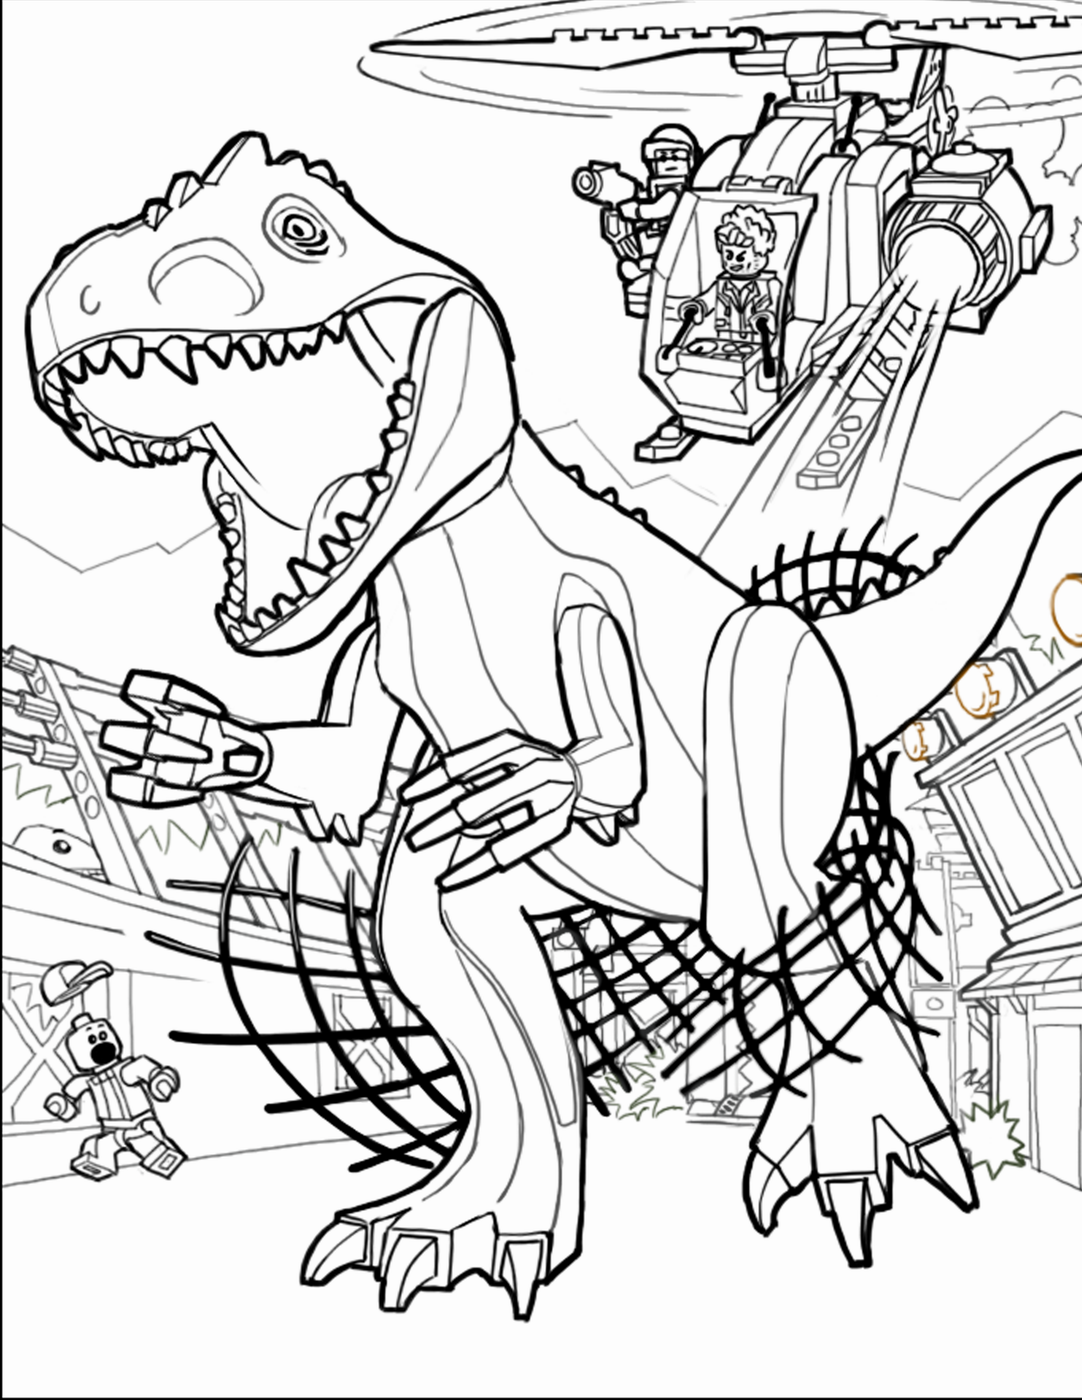 Jurassic World Drawing at GetDrawings Free for